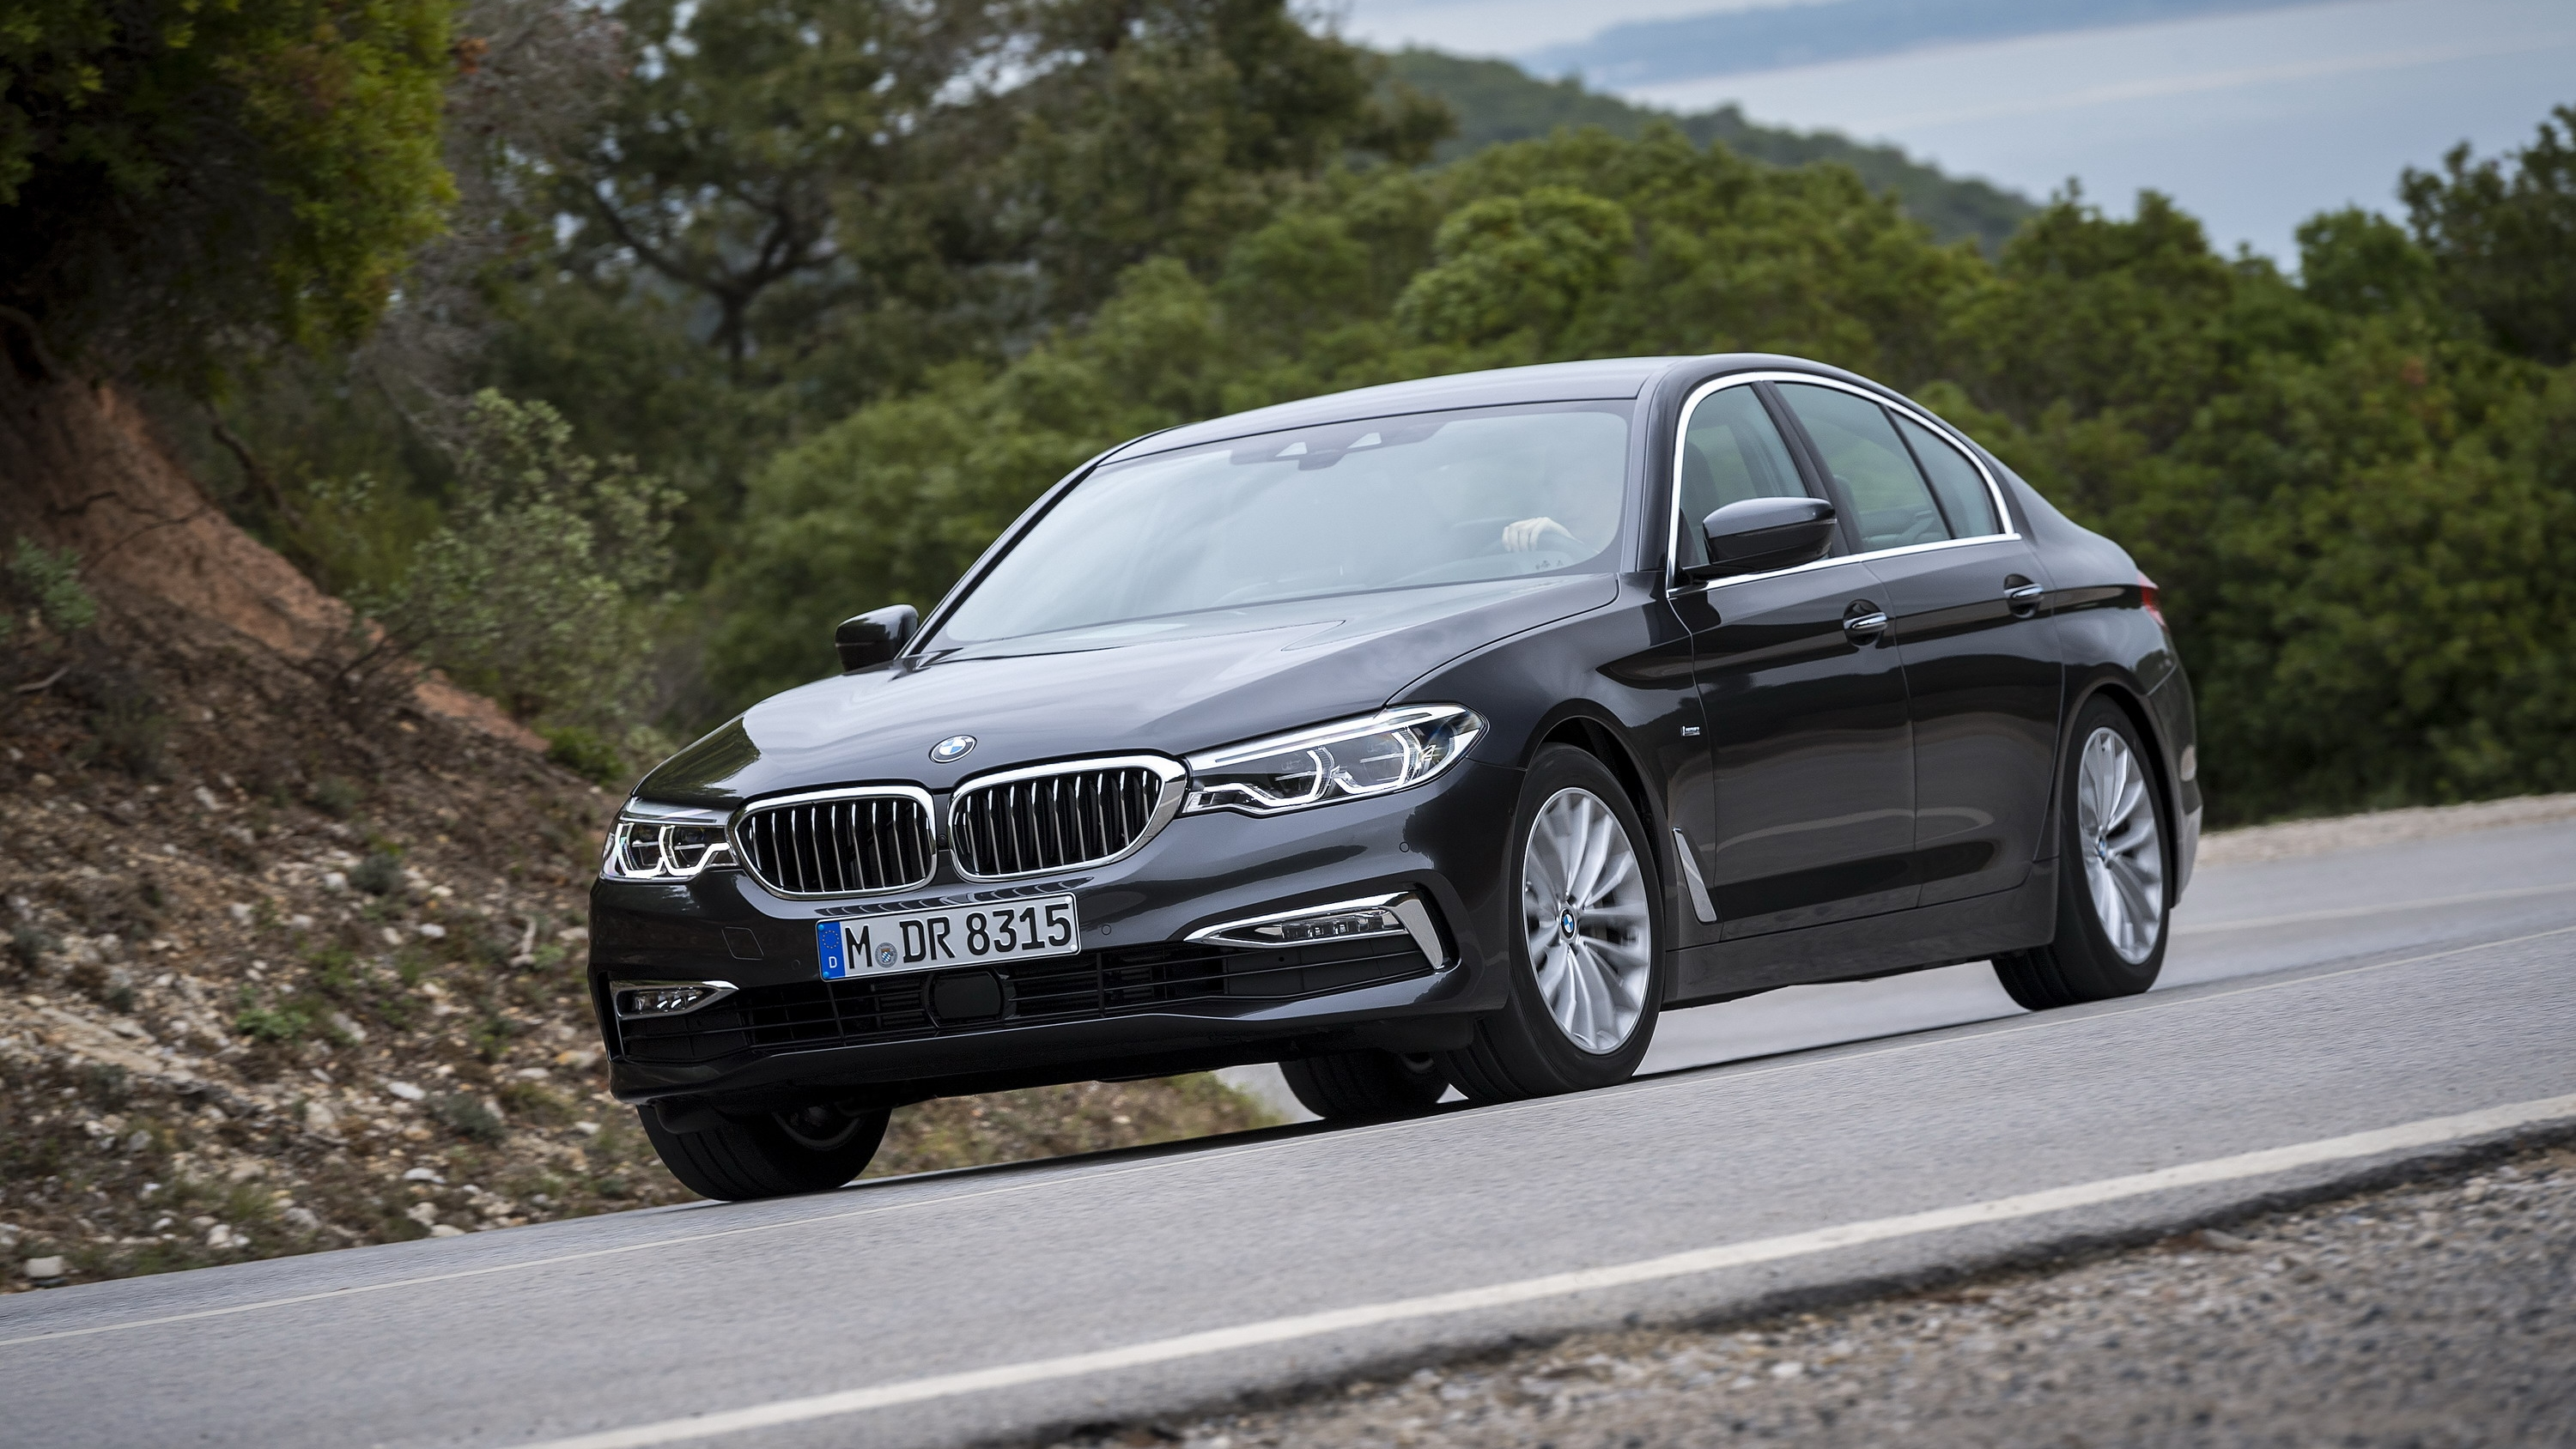 Bmw 5 Series Latest News Reviews Specifications Prices Photos And Videos Top Speed